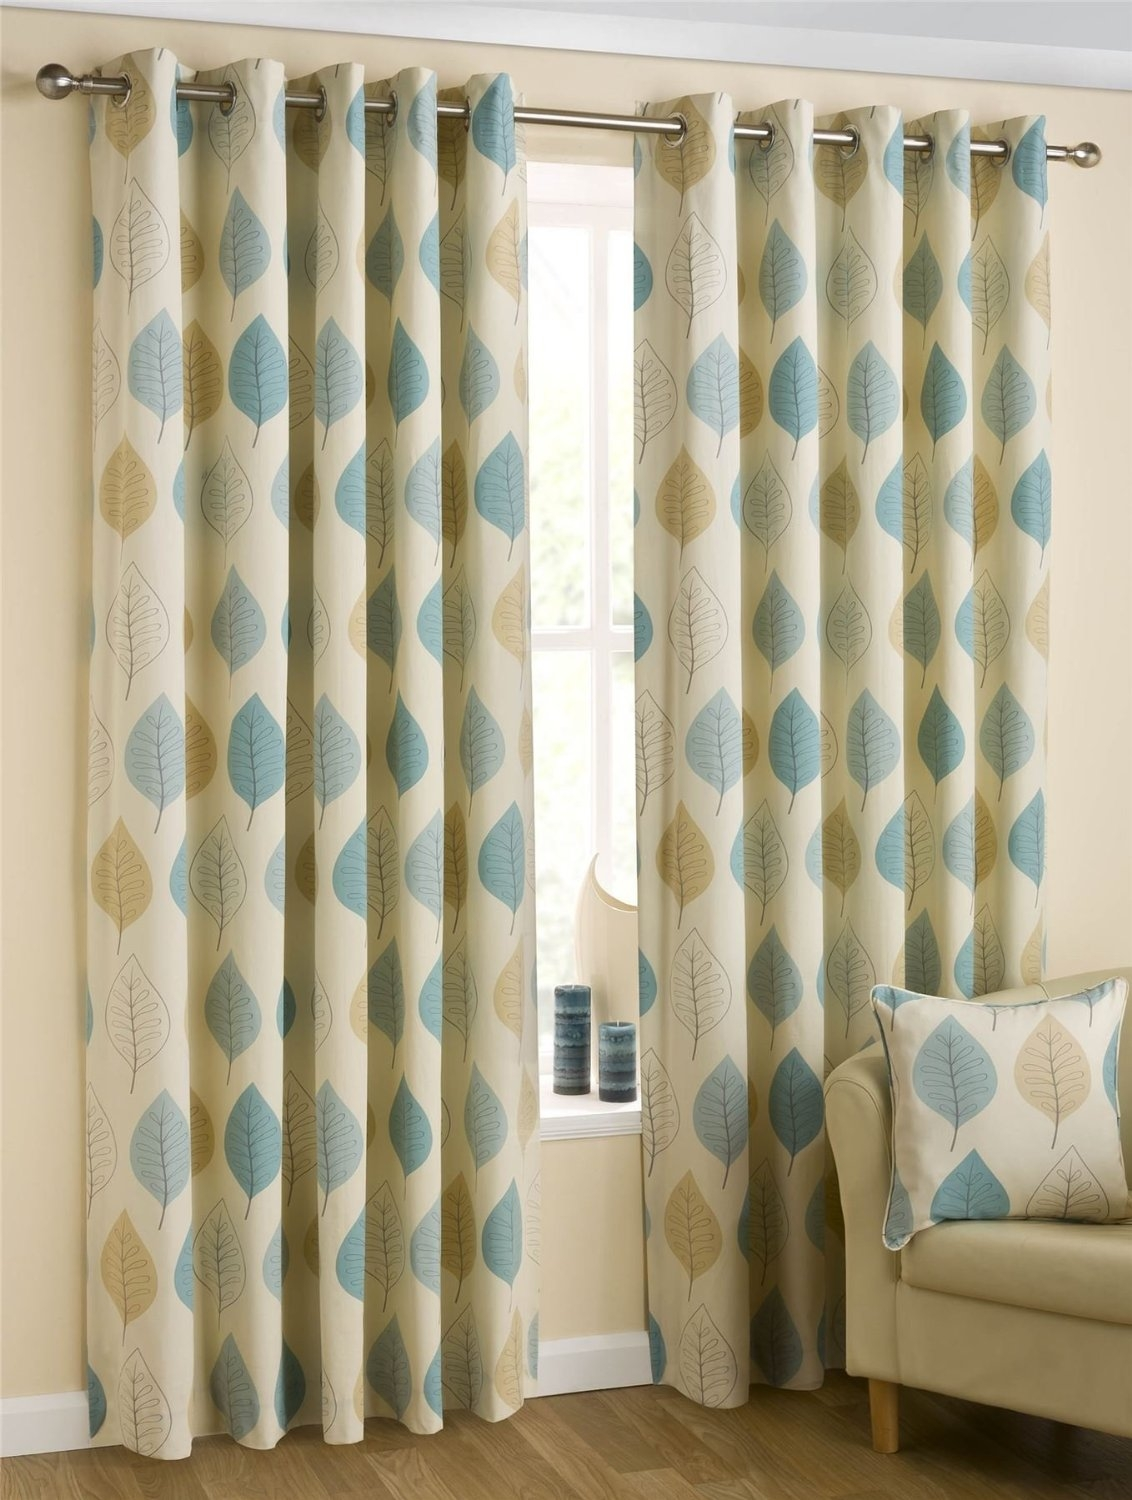 Homescapes Duck Egg Blue Cream Eyelet Ring Top Cotton Curtains With Cotton Eyelet Curtains (View 9 of 15)